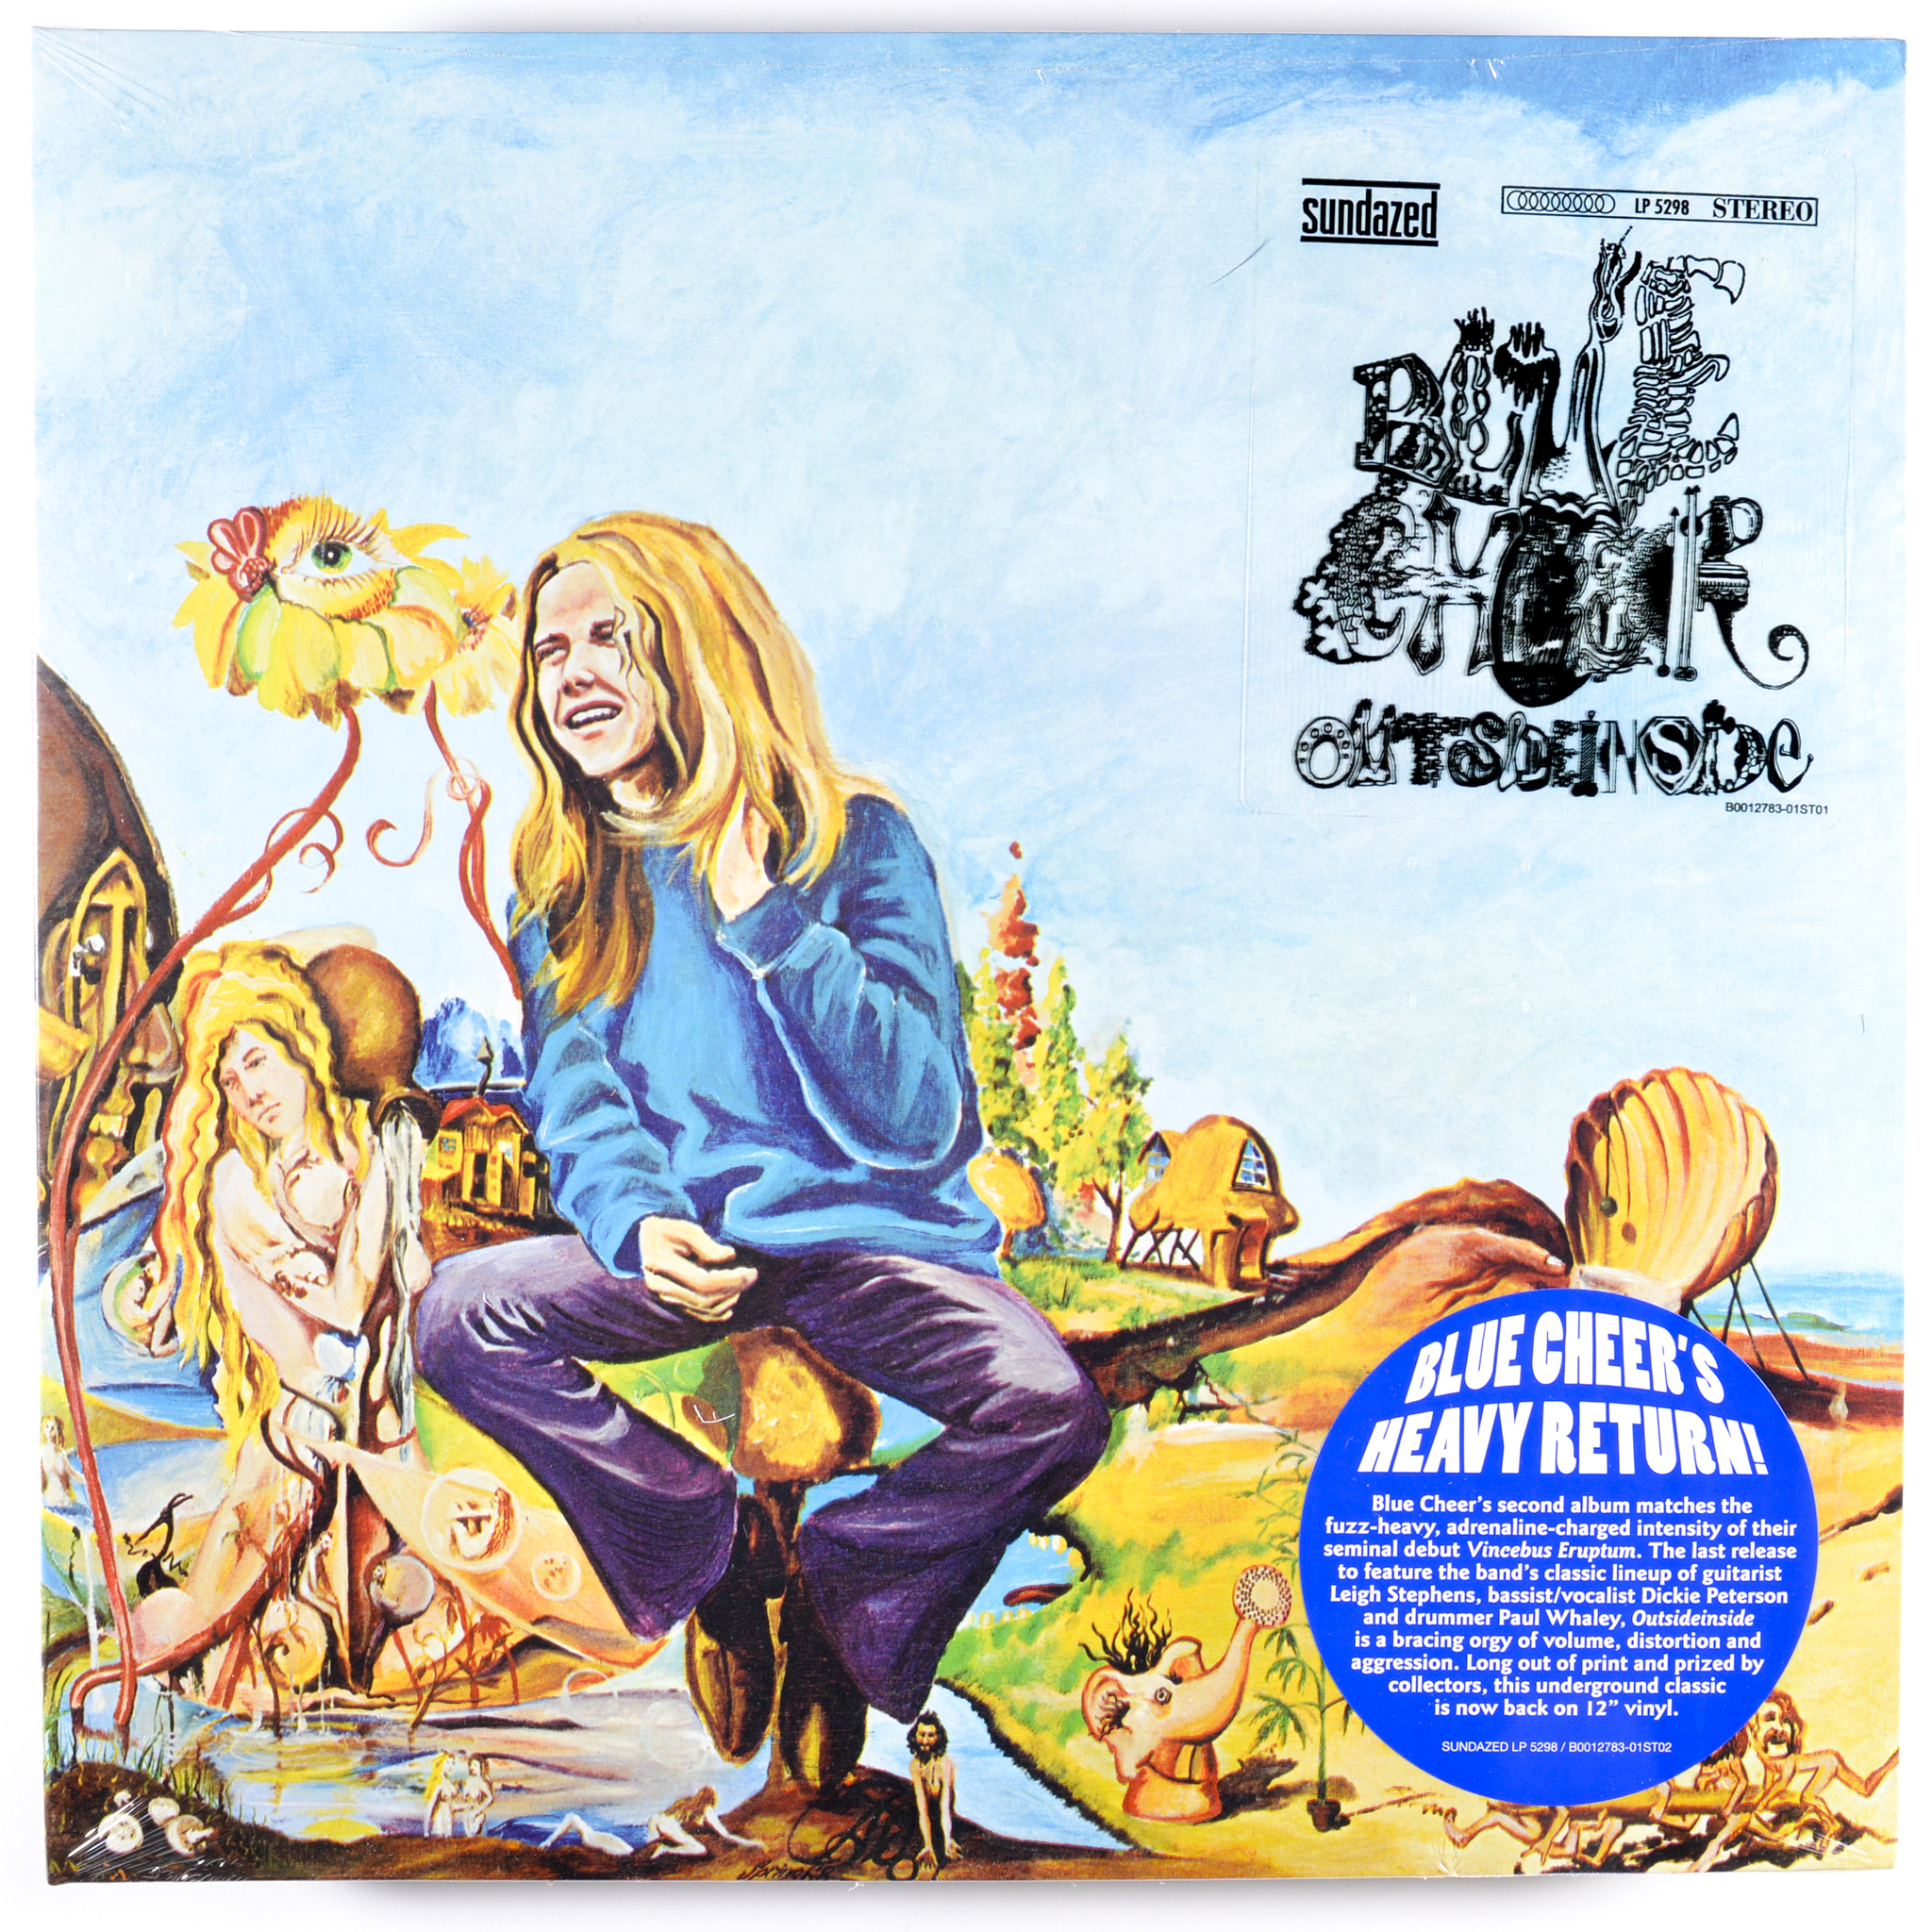 Blue Cheer - Outsideinside [LP]